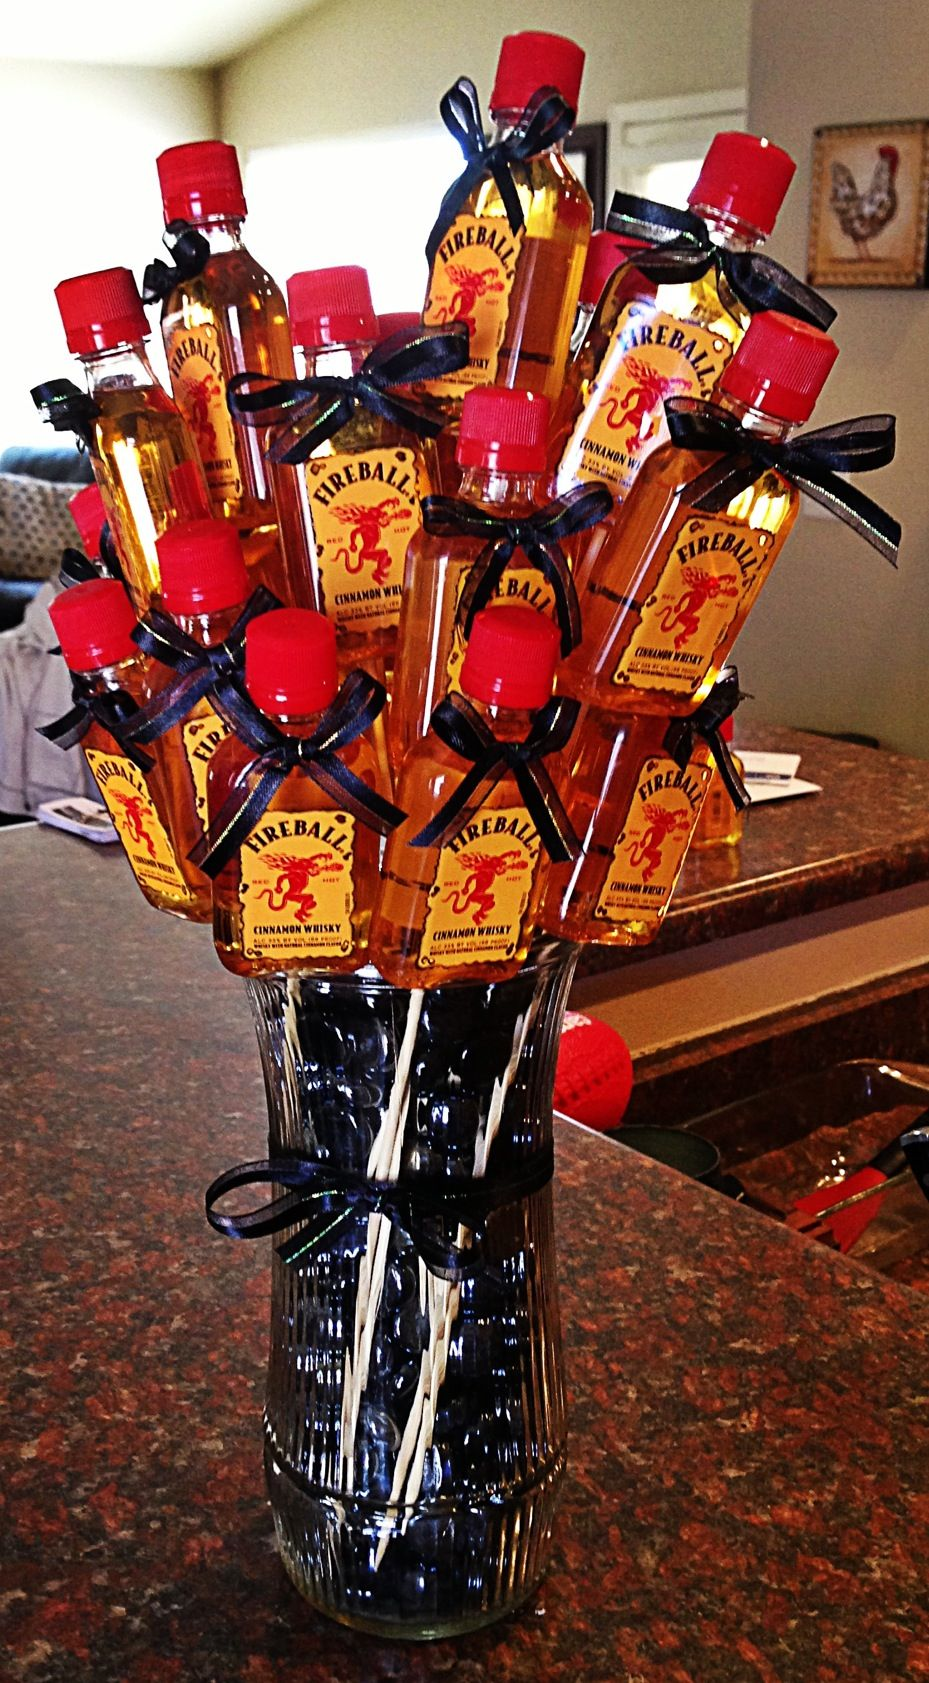 Pin By Taylor On Holy Fabulous Liquor Gifts Liquor Gift Baskets Liquor Bouquet